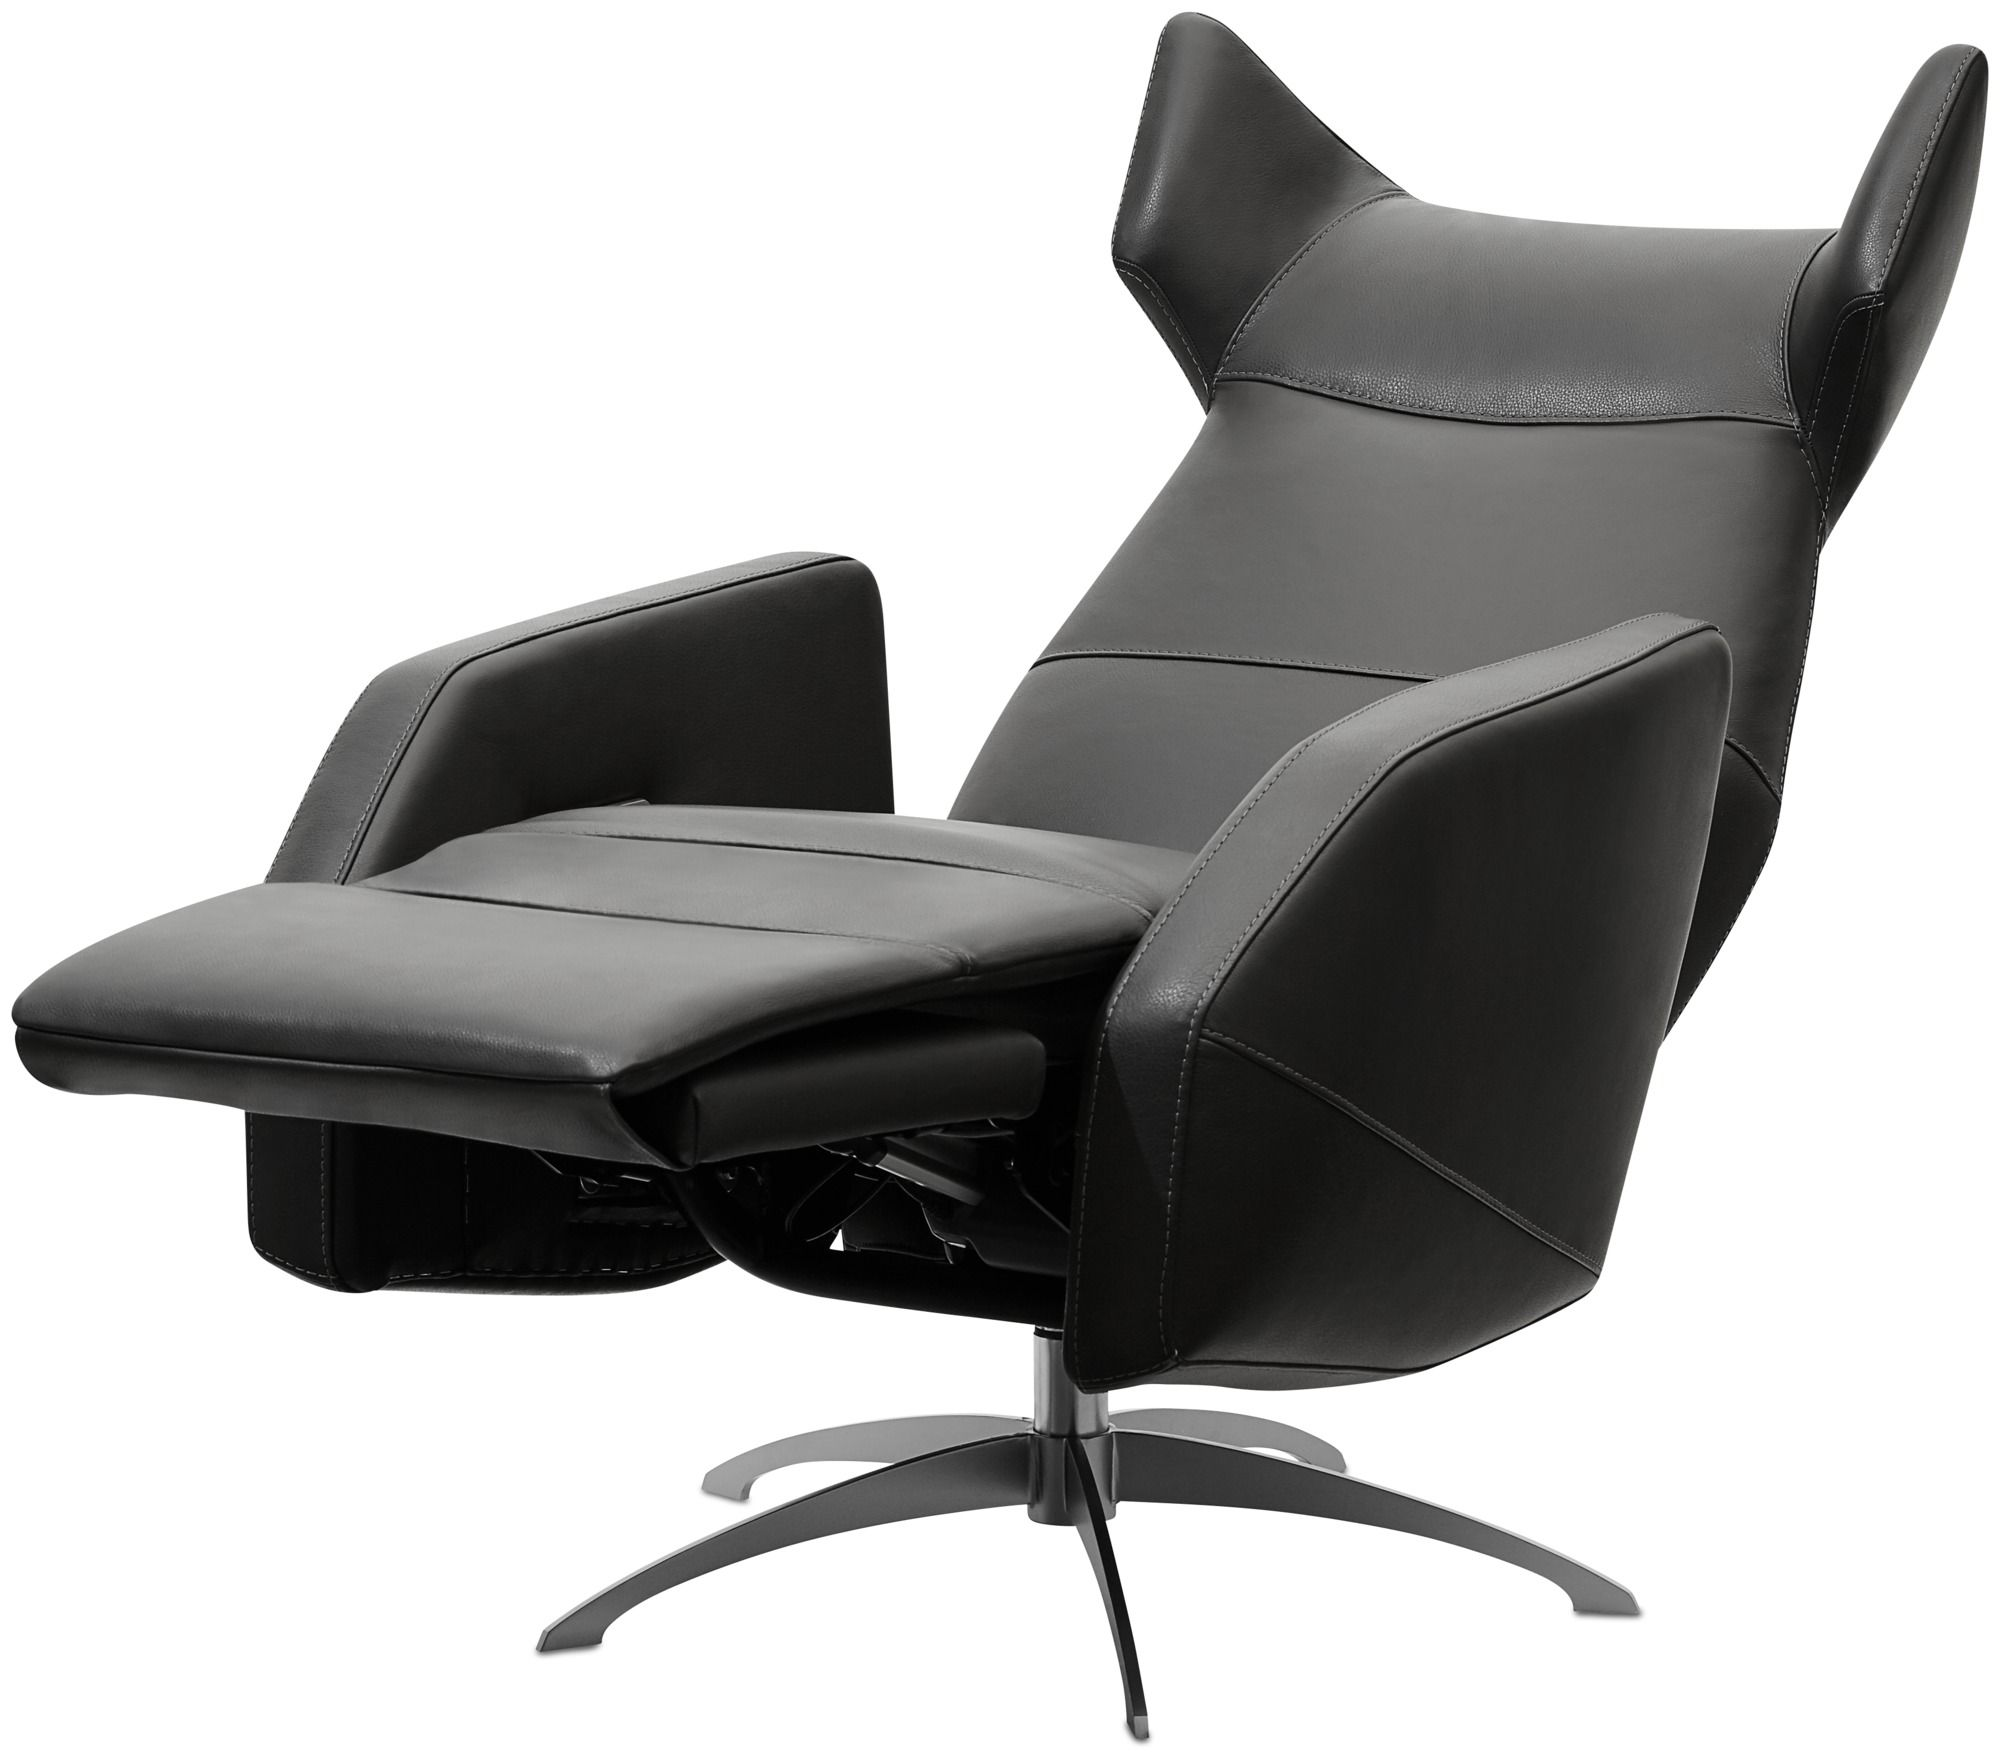 Swivel Chaise Lounge Chair Worlds Best Massage Modern Armchairs Quality From Boconcept Baby Planning